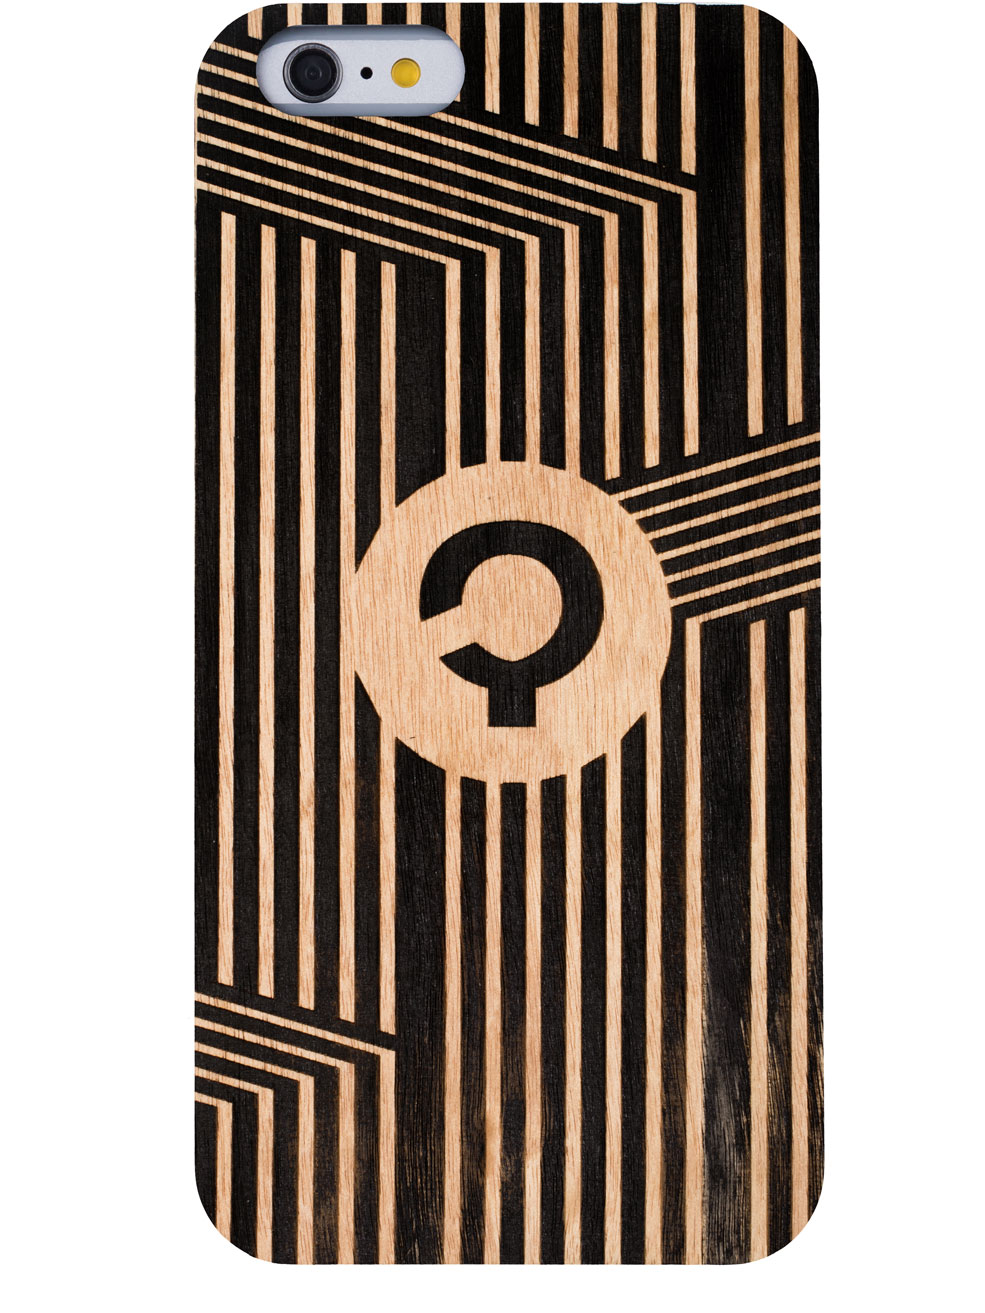 Wooden-case-iPhone-6-plus-Aniegre-Vertical